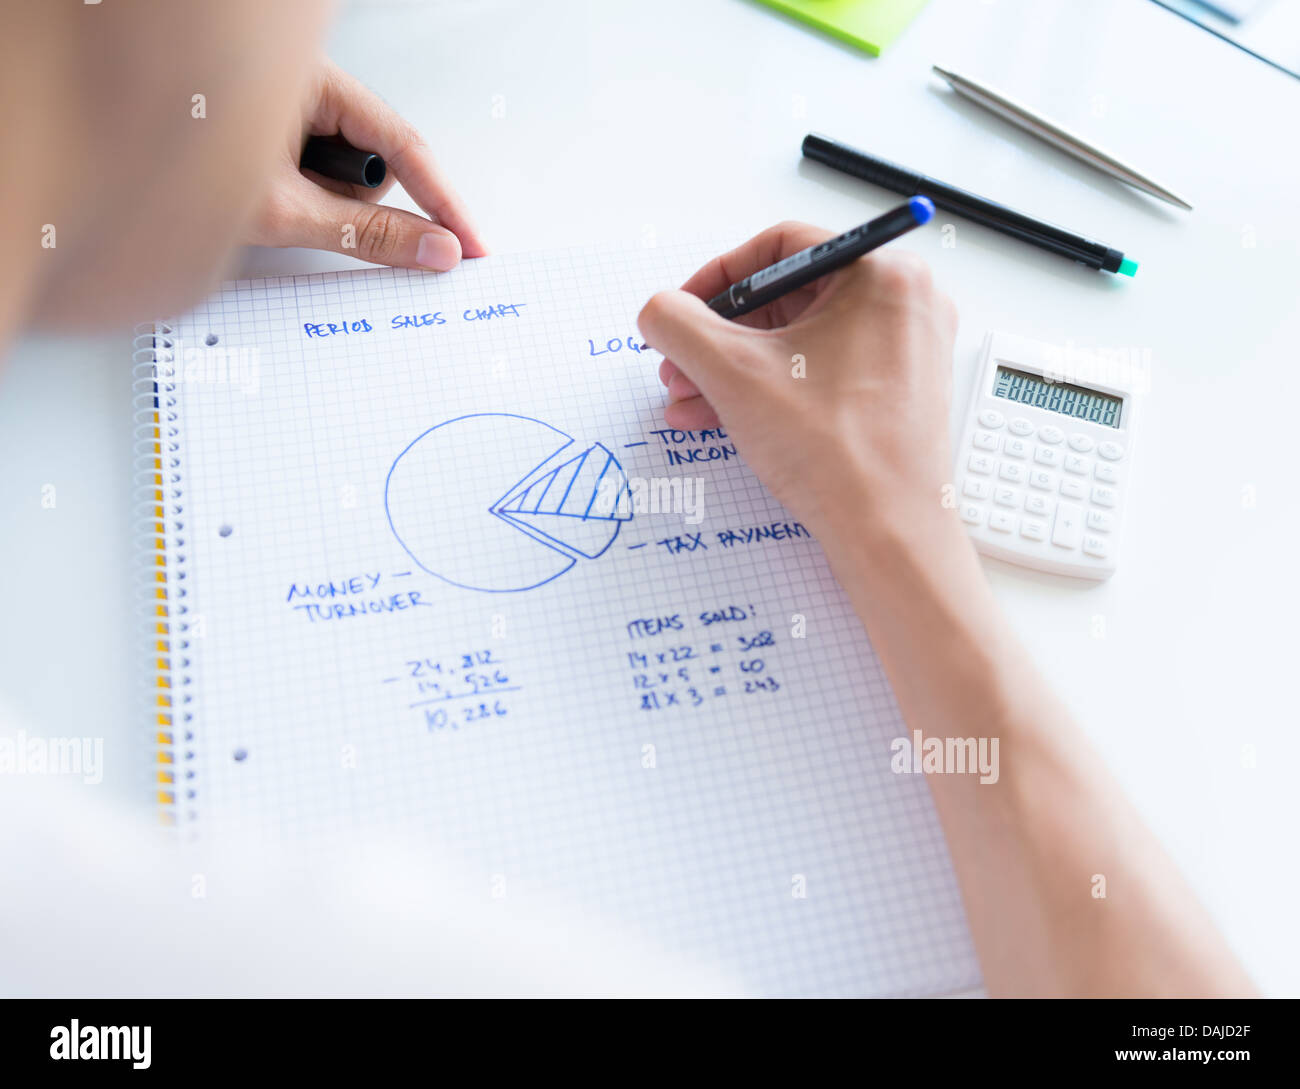 Person sitting at the desk, calculating sales earnings and drawing circular diagram with numbers - Stock Image